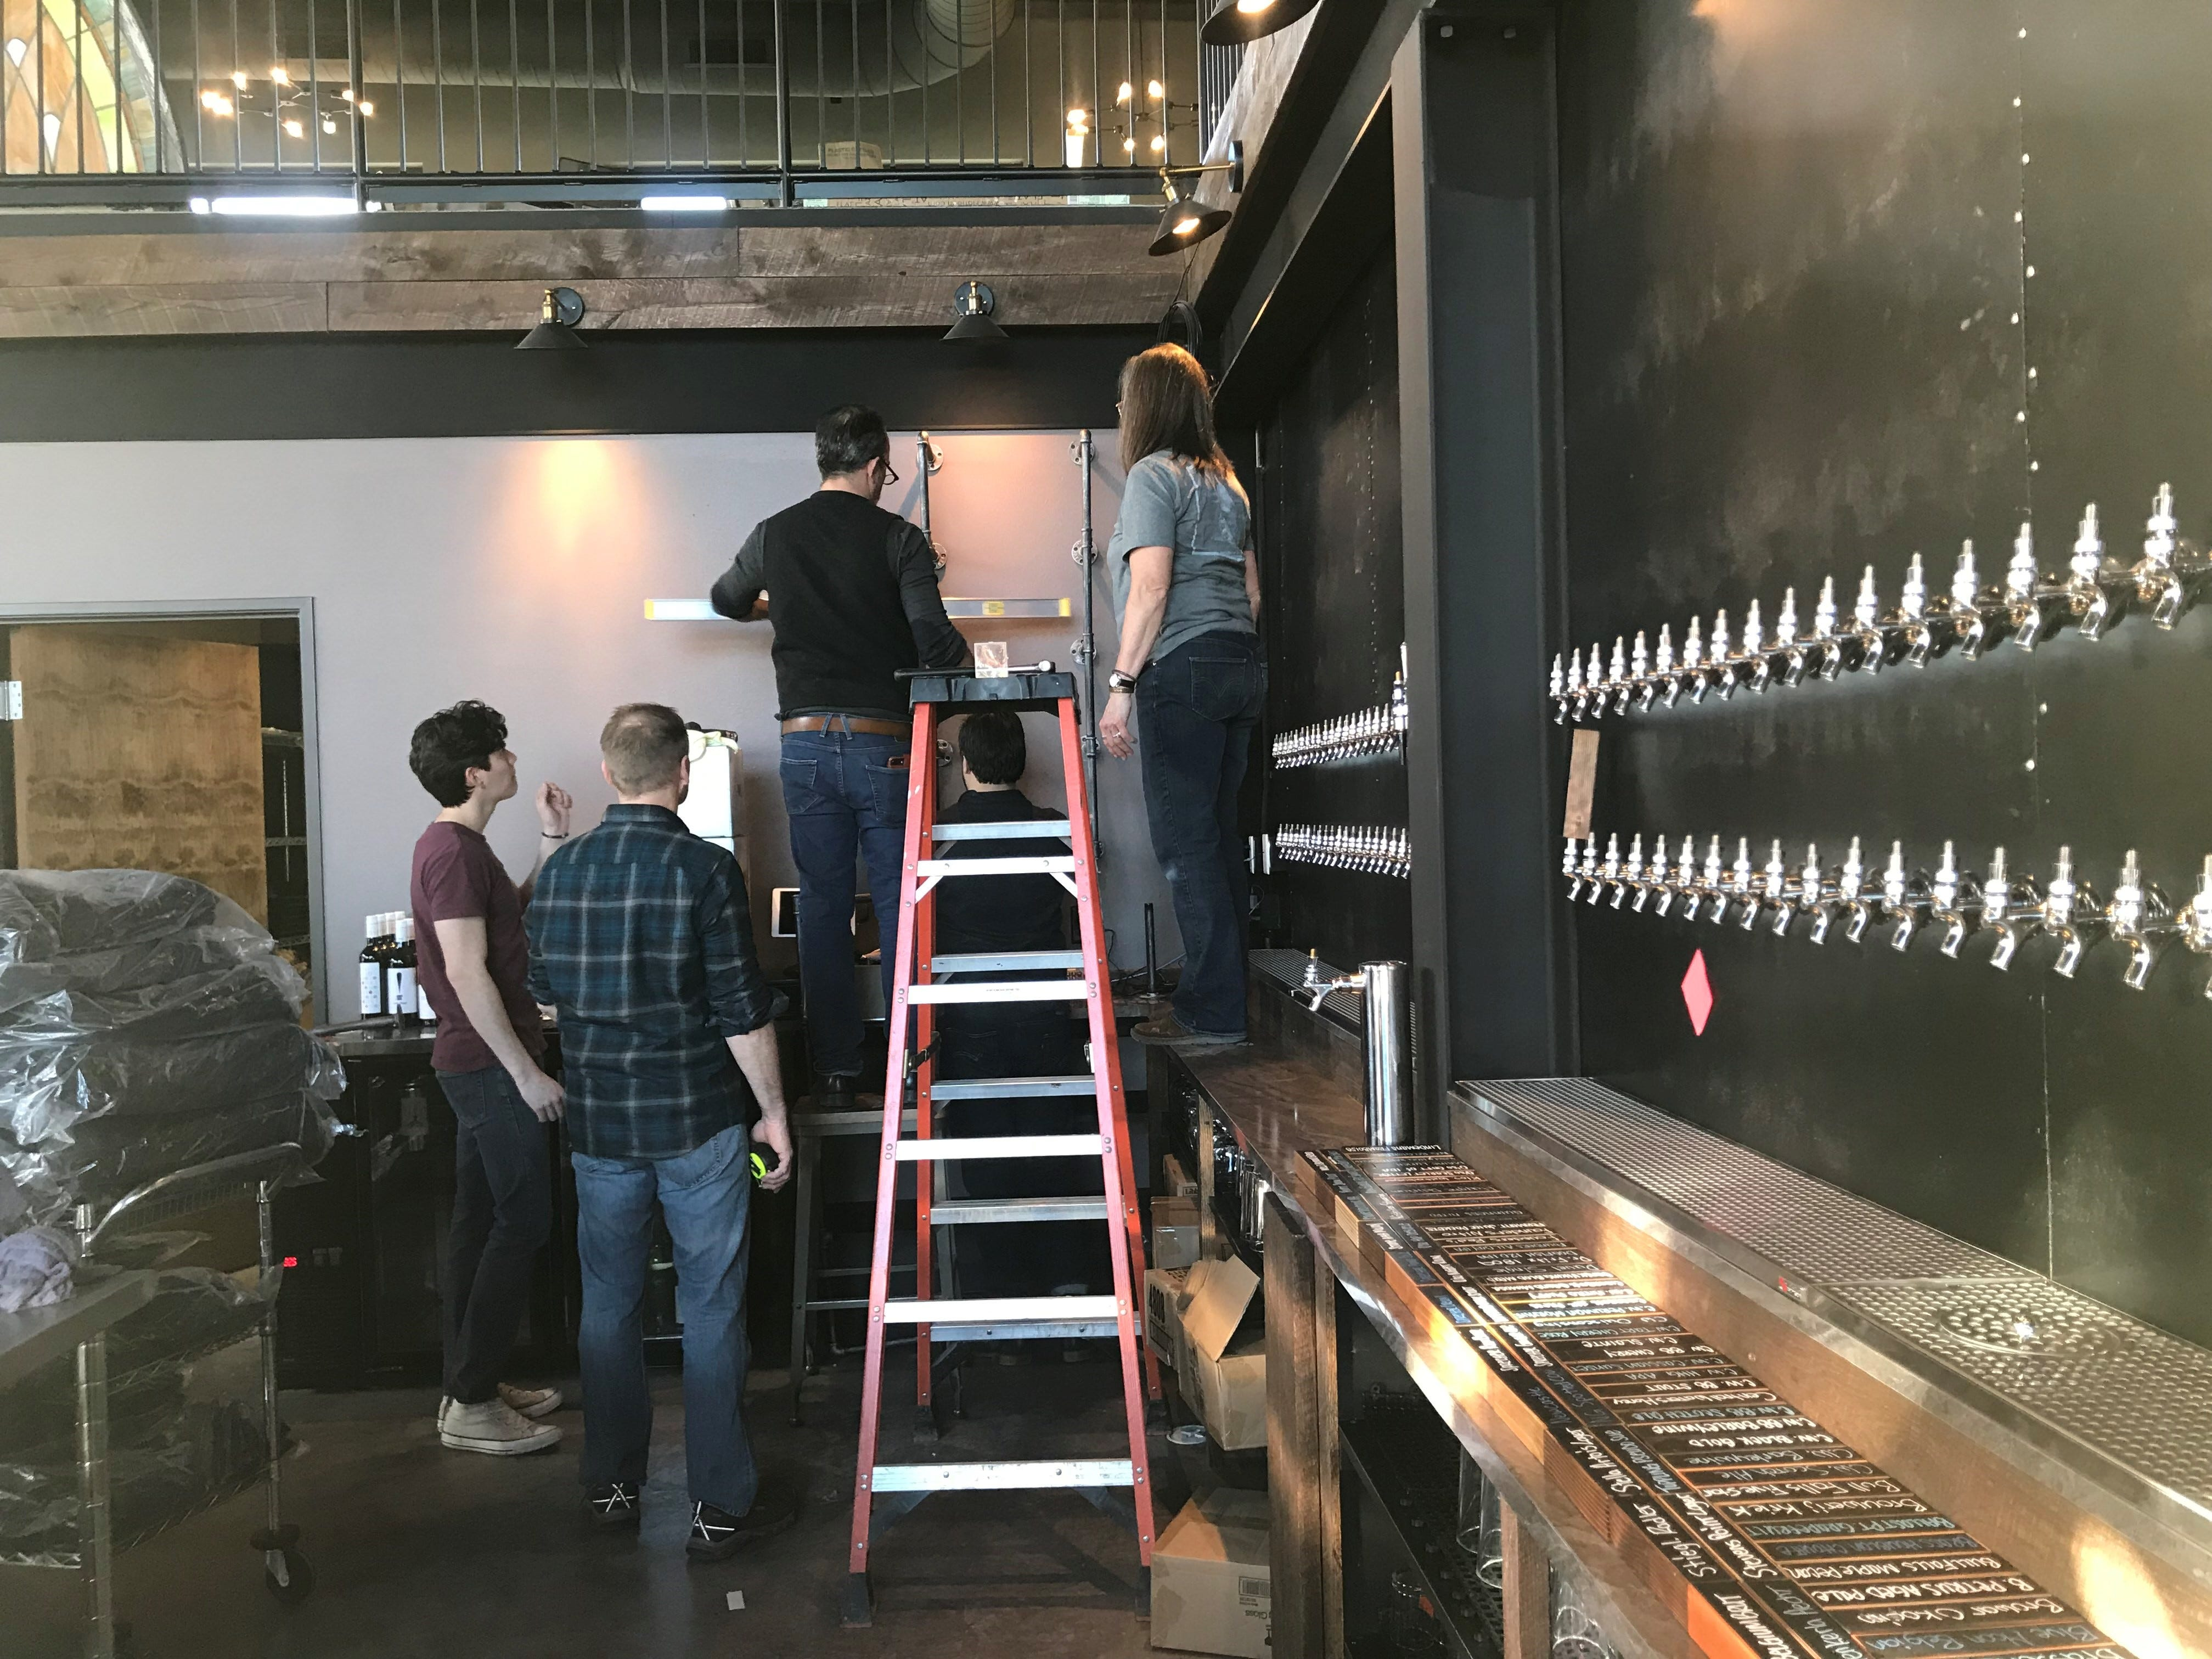 There will be 101 tap beers at Tine & Cellar, with some options rotating and a new menu every Thursday.